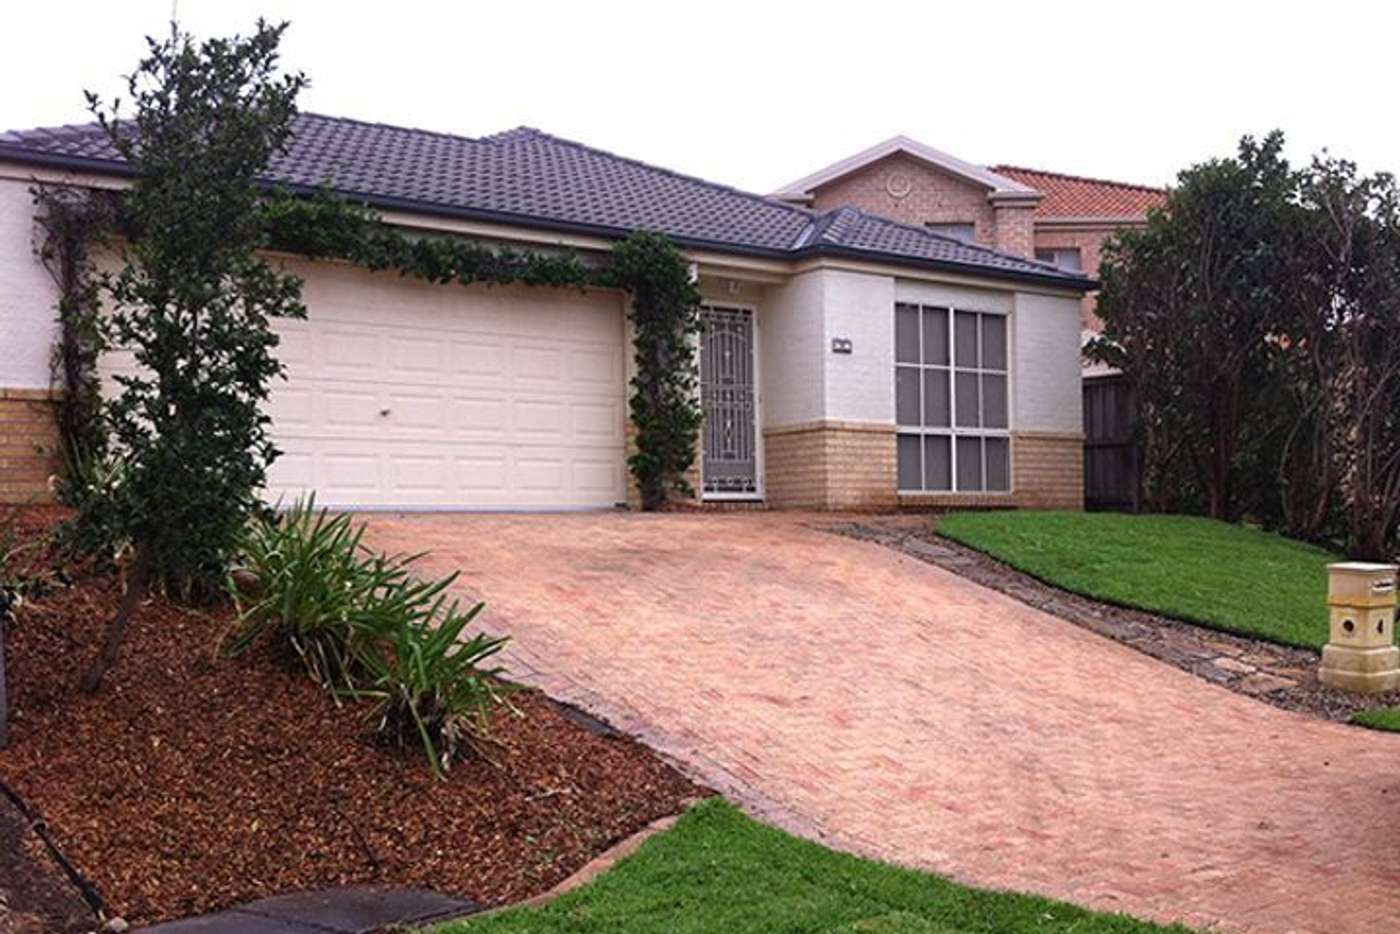 Main view of Homely house listing, 4 Melinda Close, Beaumont Hills NSW 2155